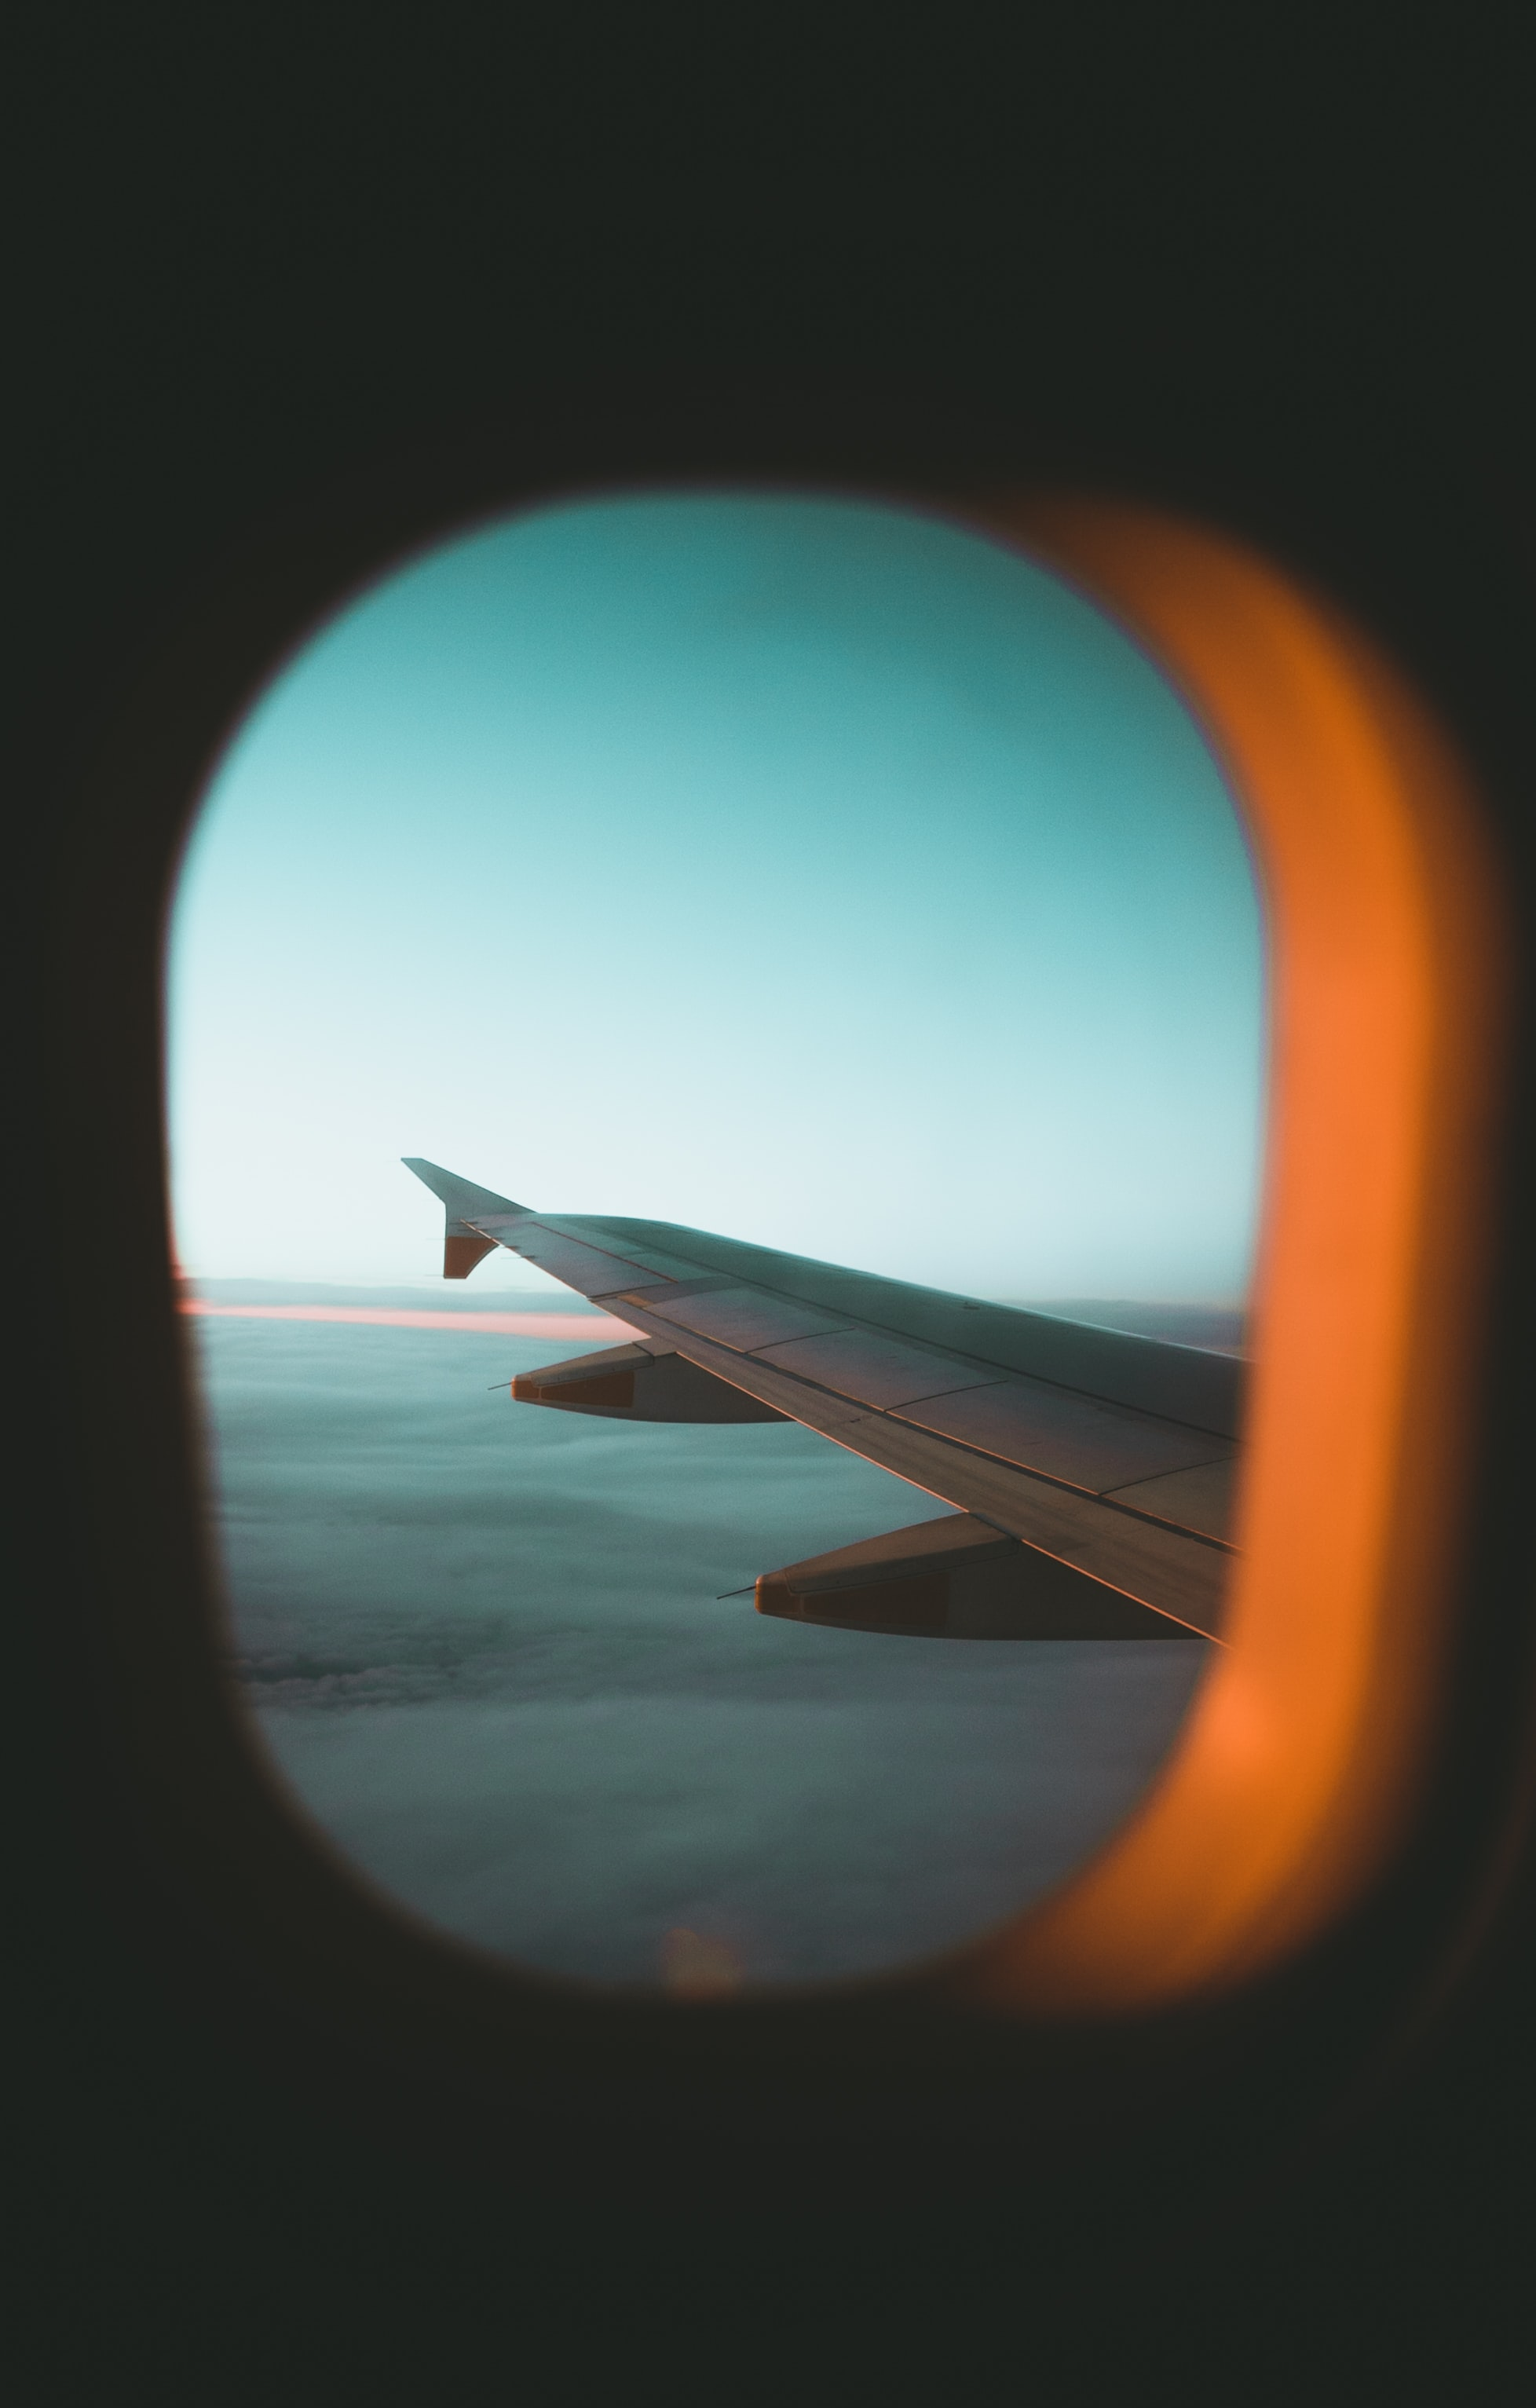 plane wing through glass window